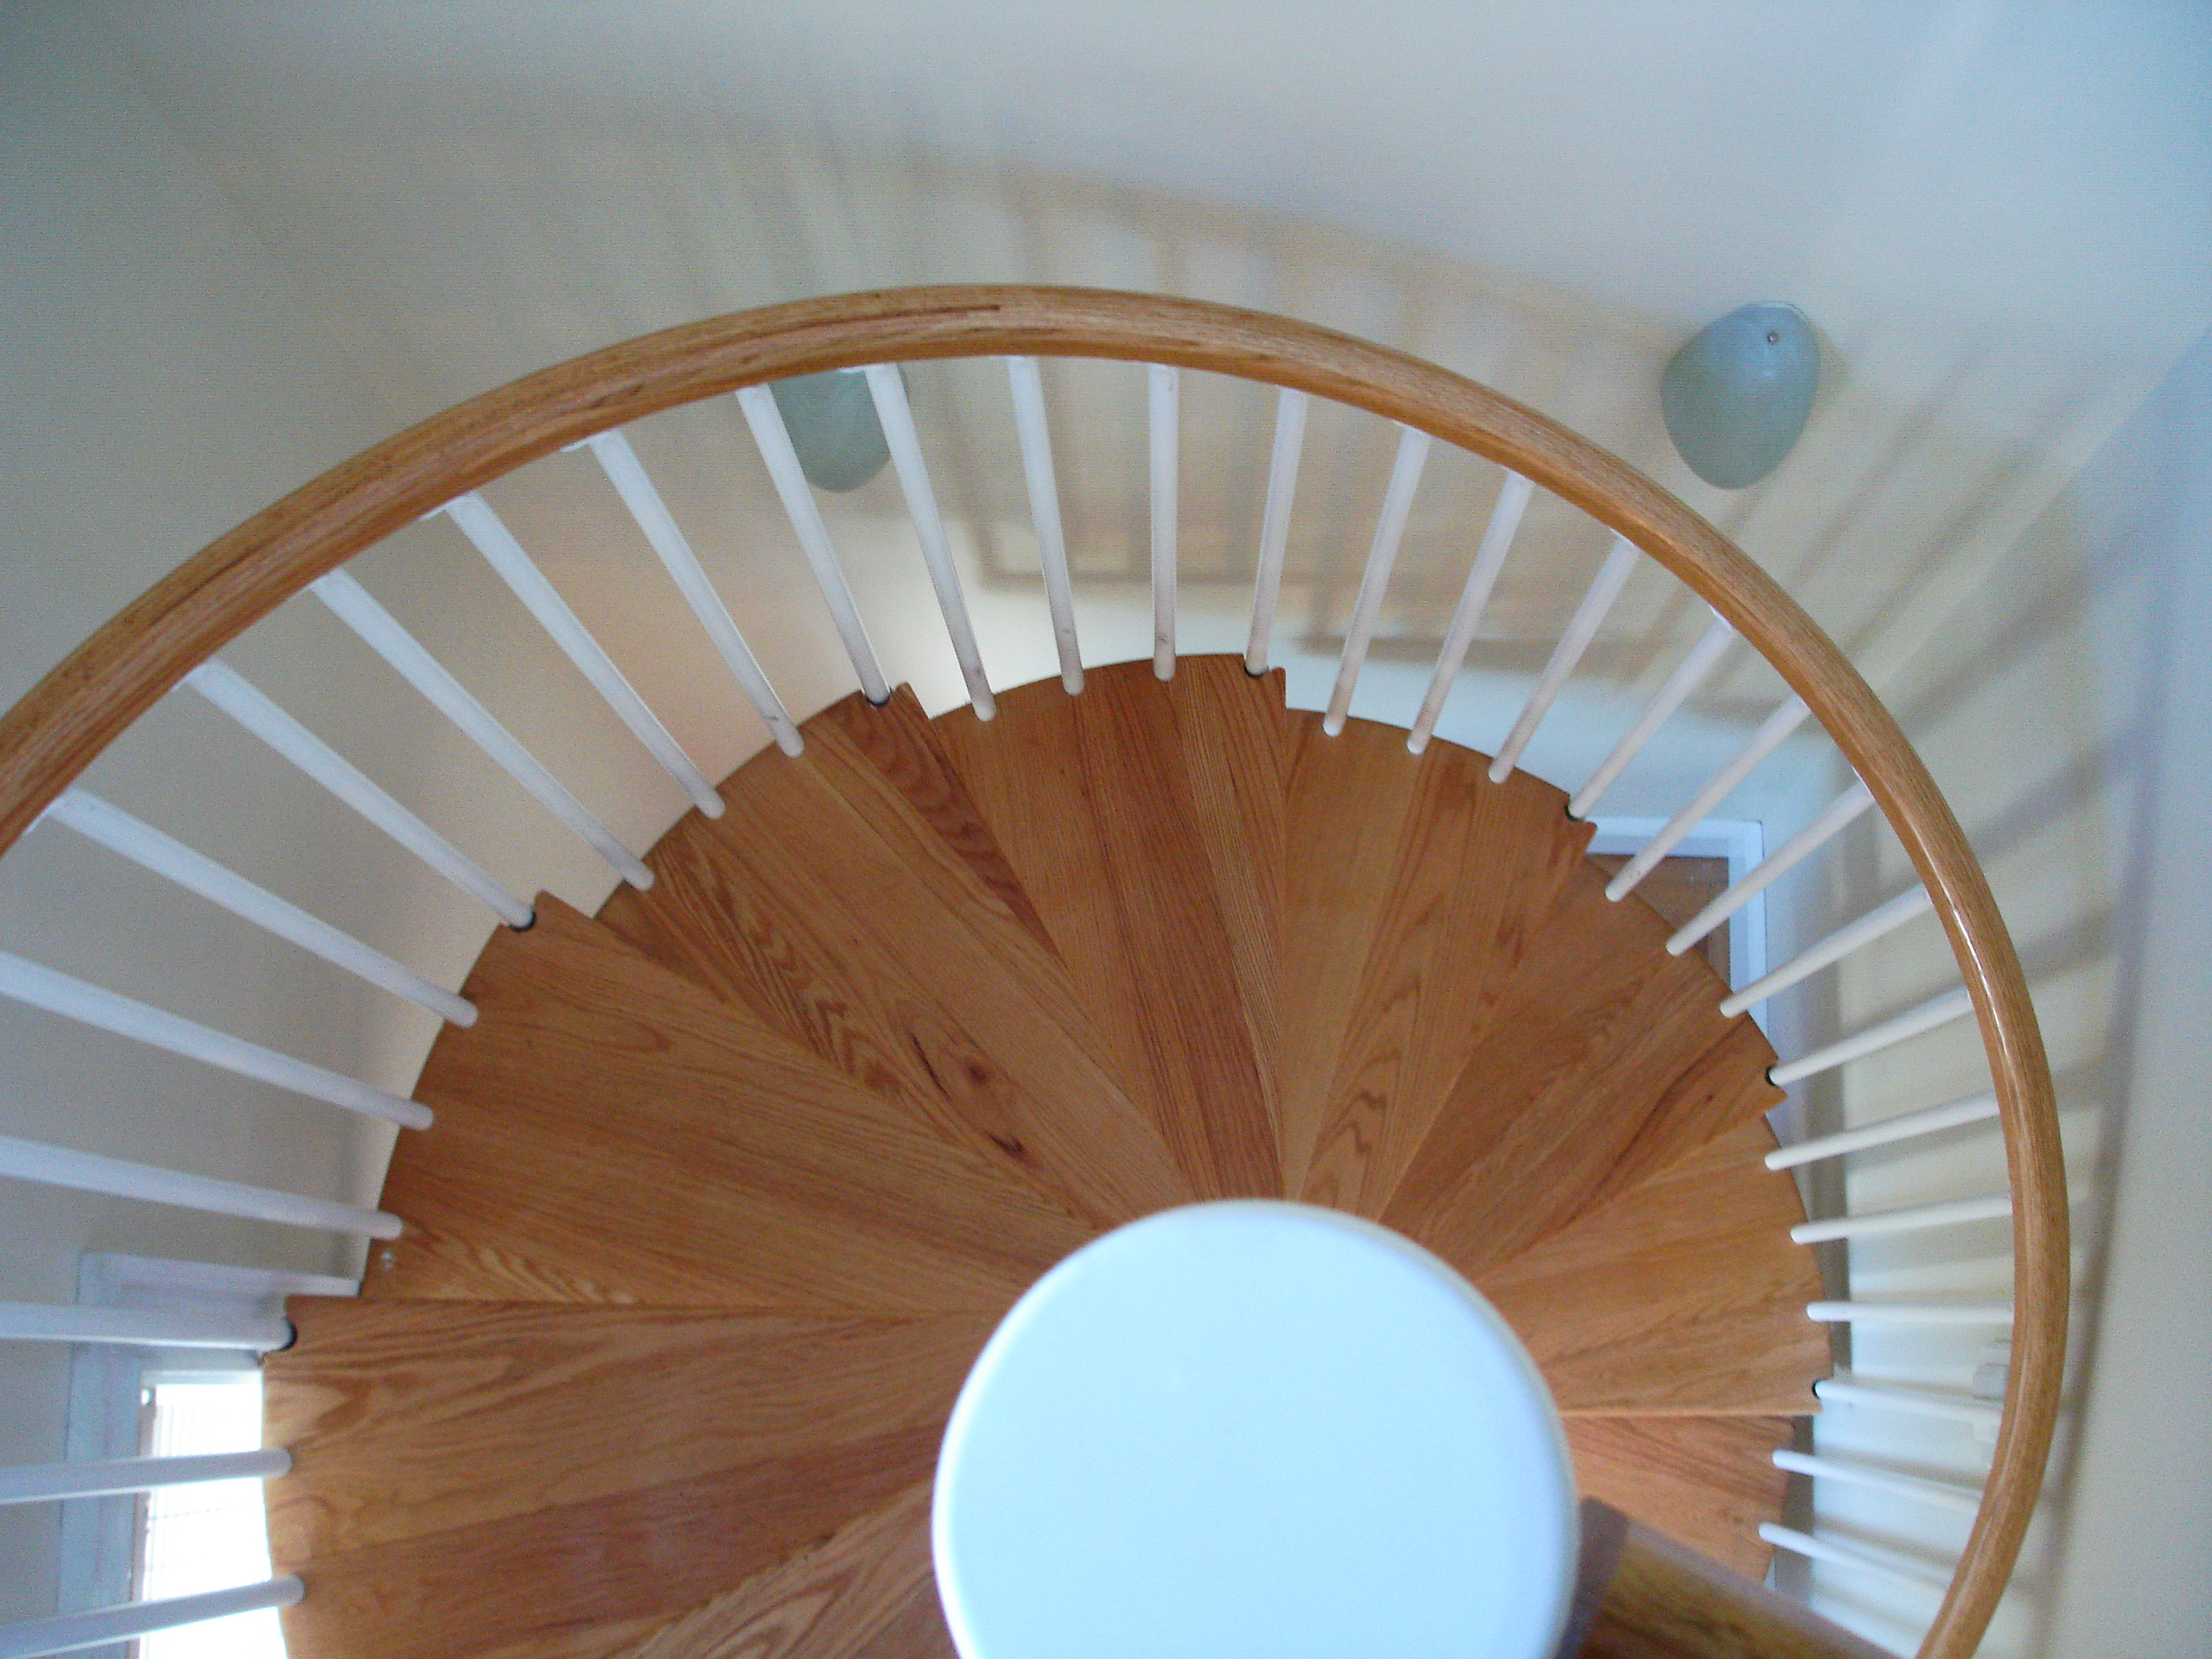 New spiral staircase